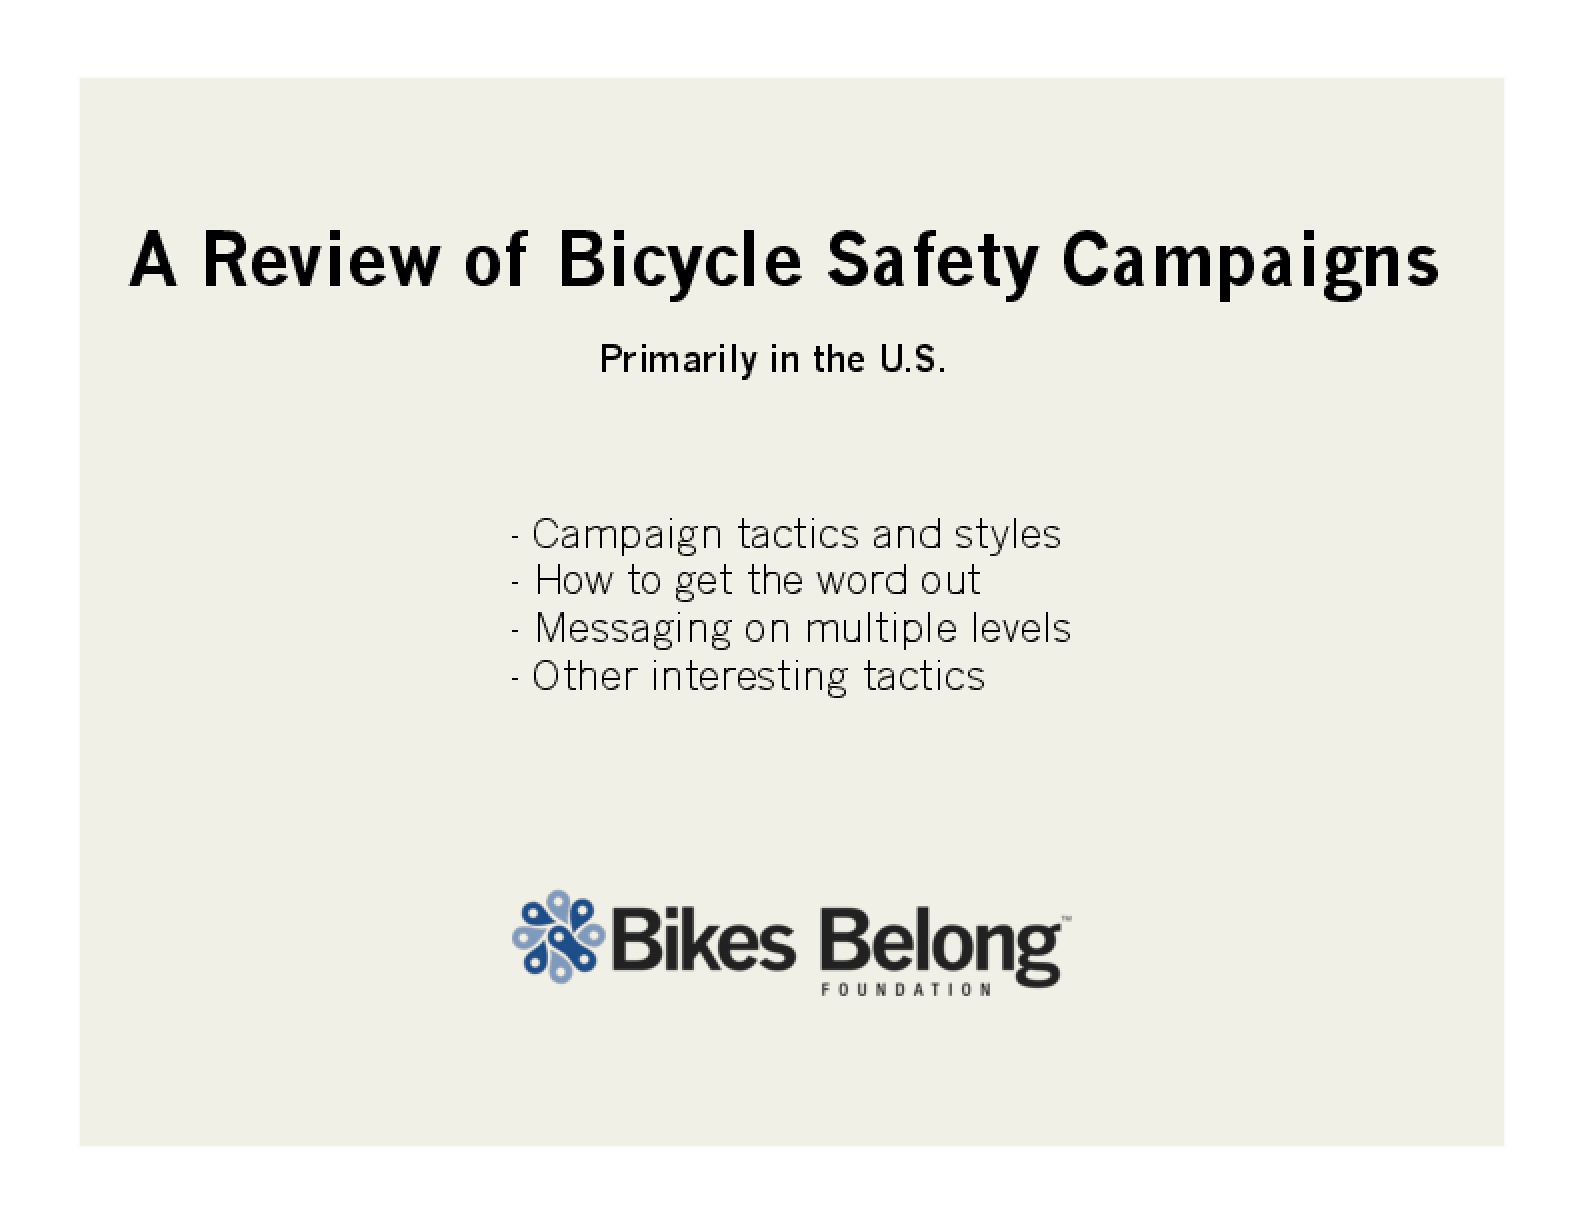 Bicycle Safety Campaign Review